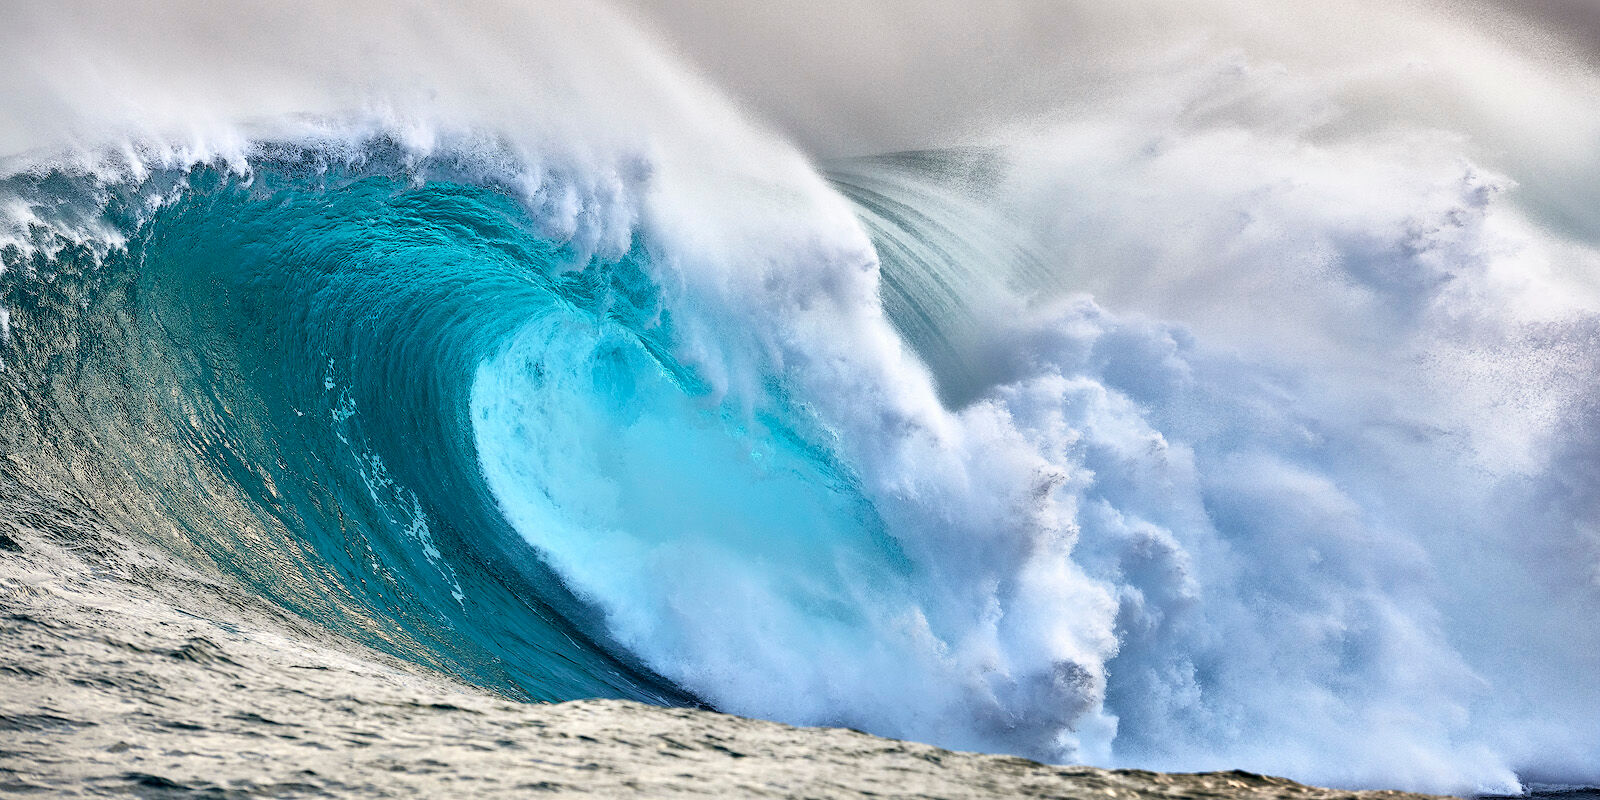 """After photographing the wave Peahi (also known as """"Jaws""""), most others just don't seem to compare with the sheer power and intensity..."""